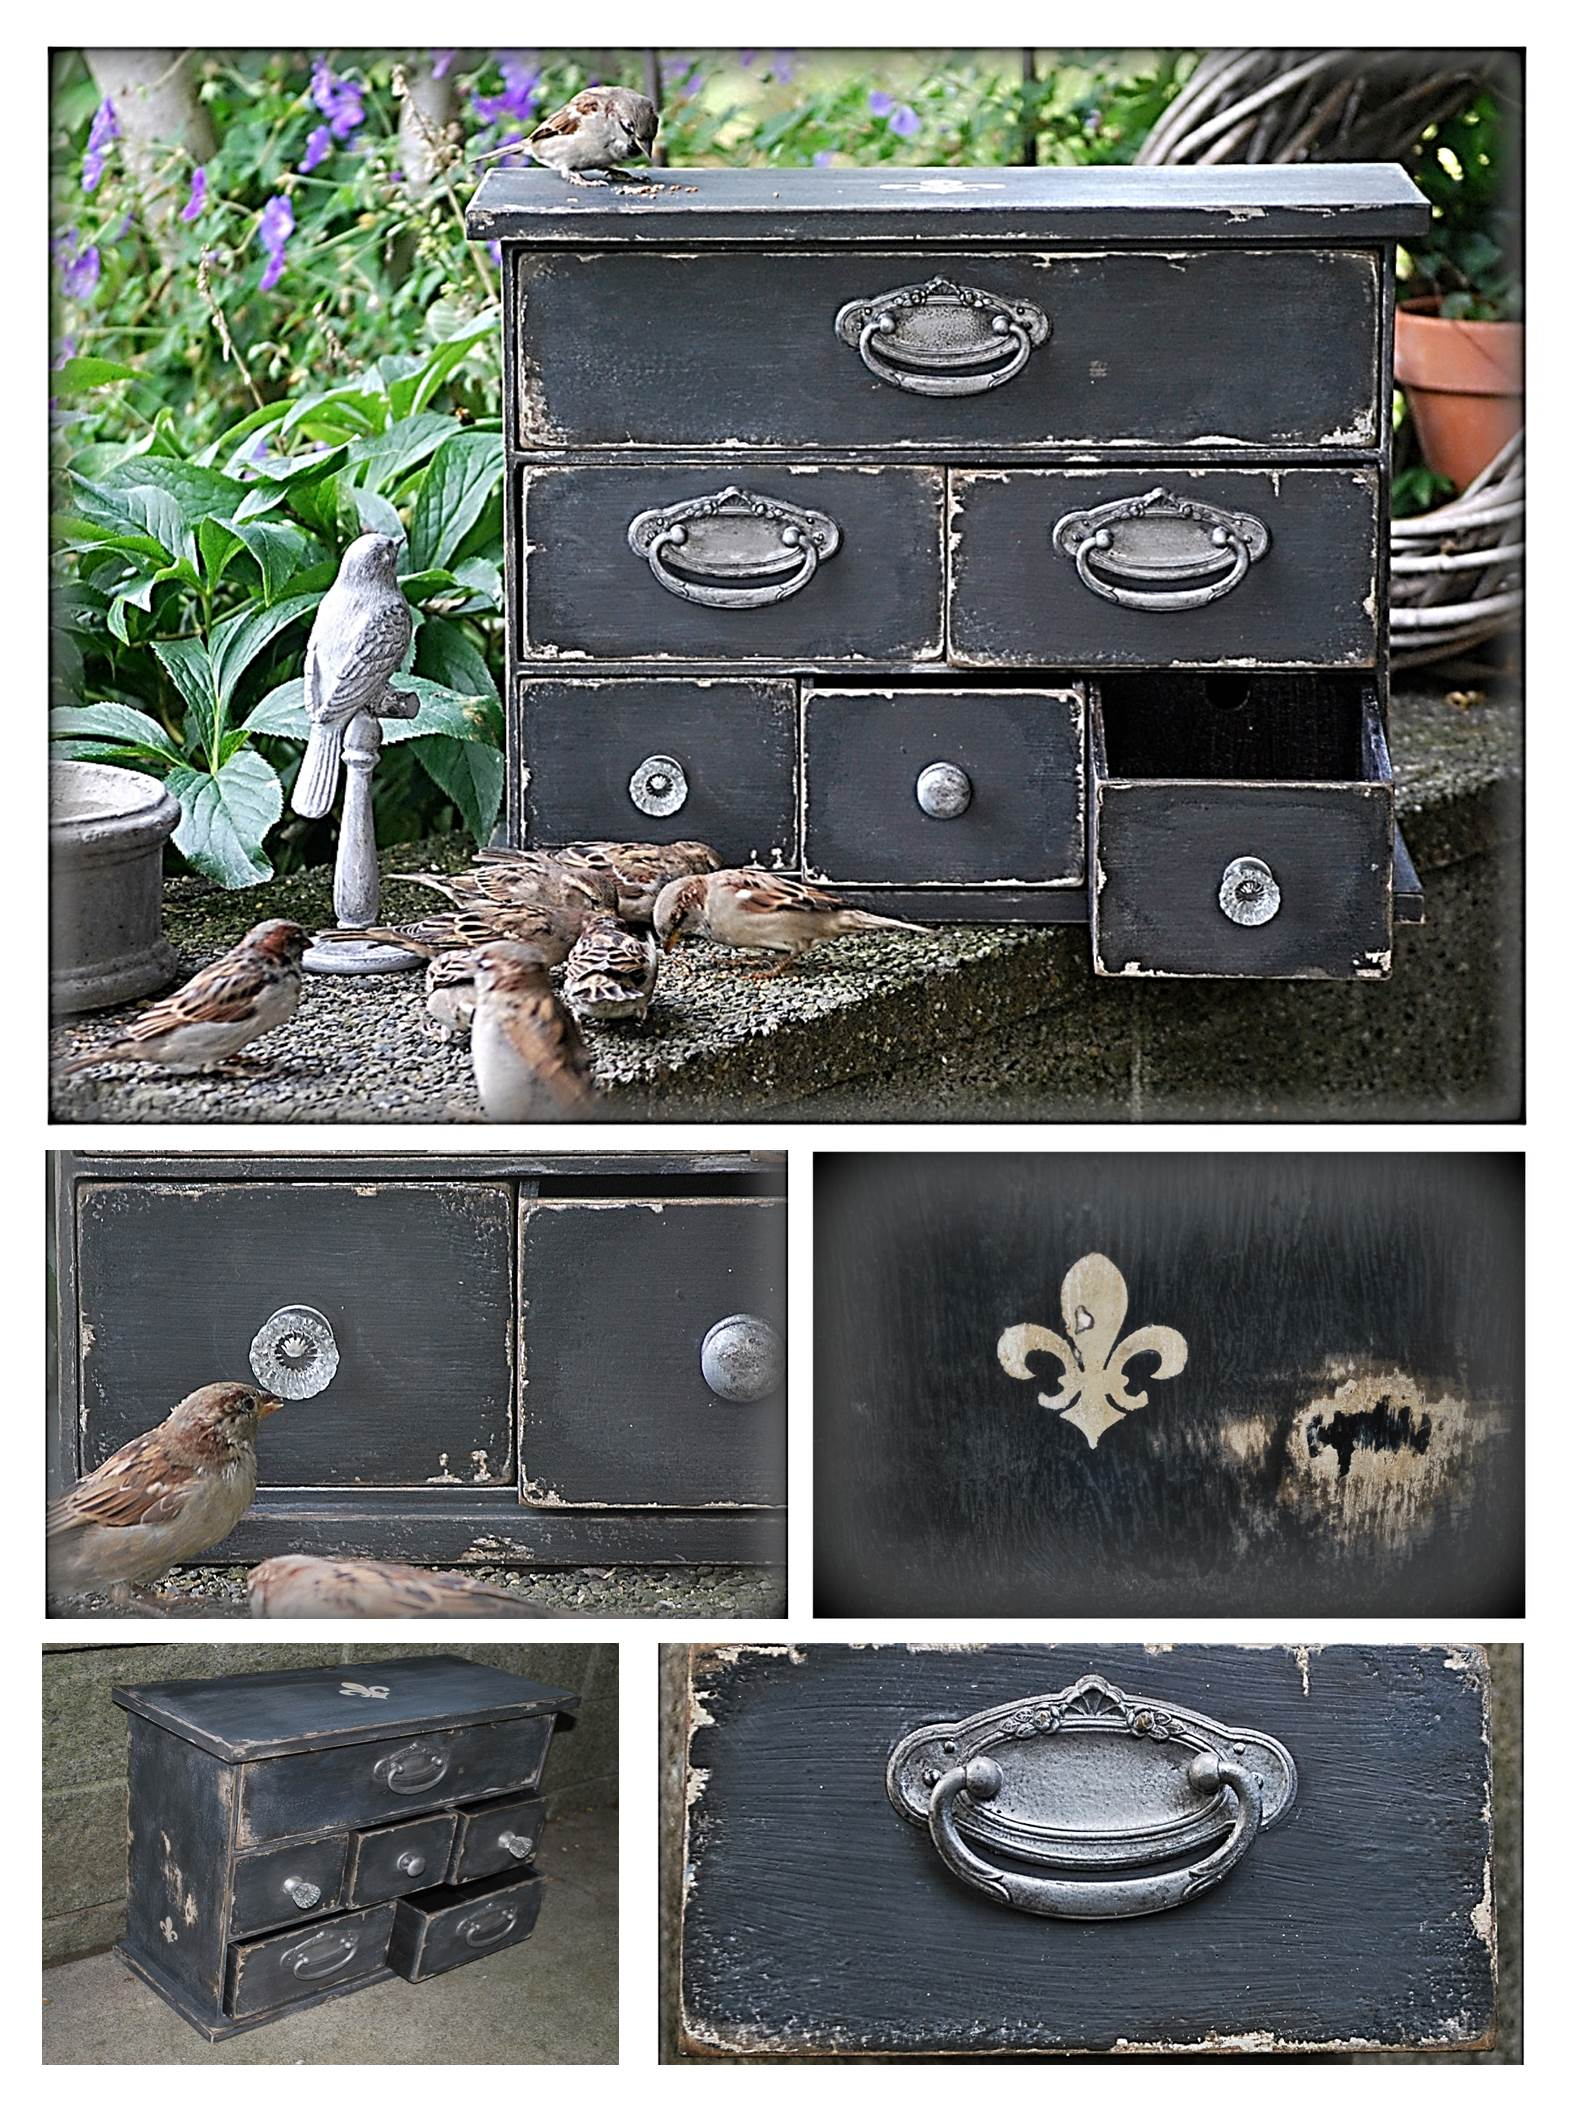 This rustic cabinet is painted with chalkboard paint and distressed for a wore, vintage look